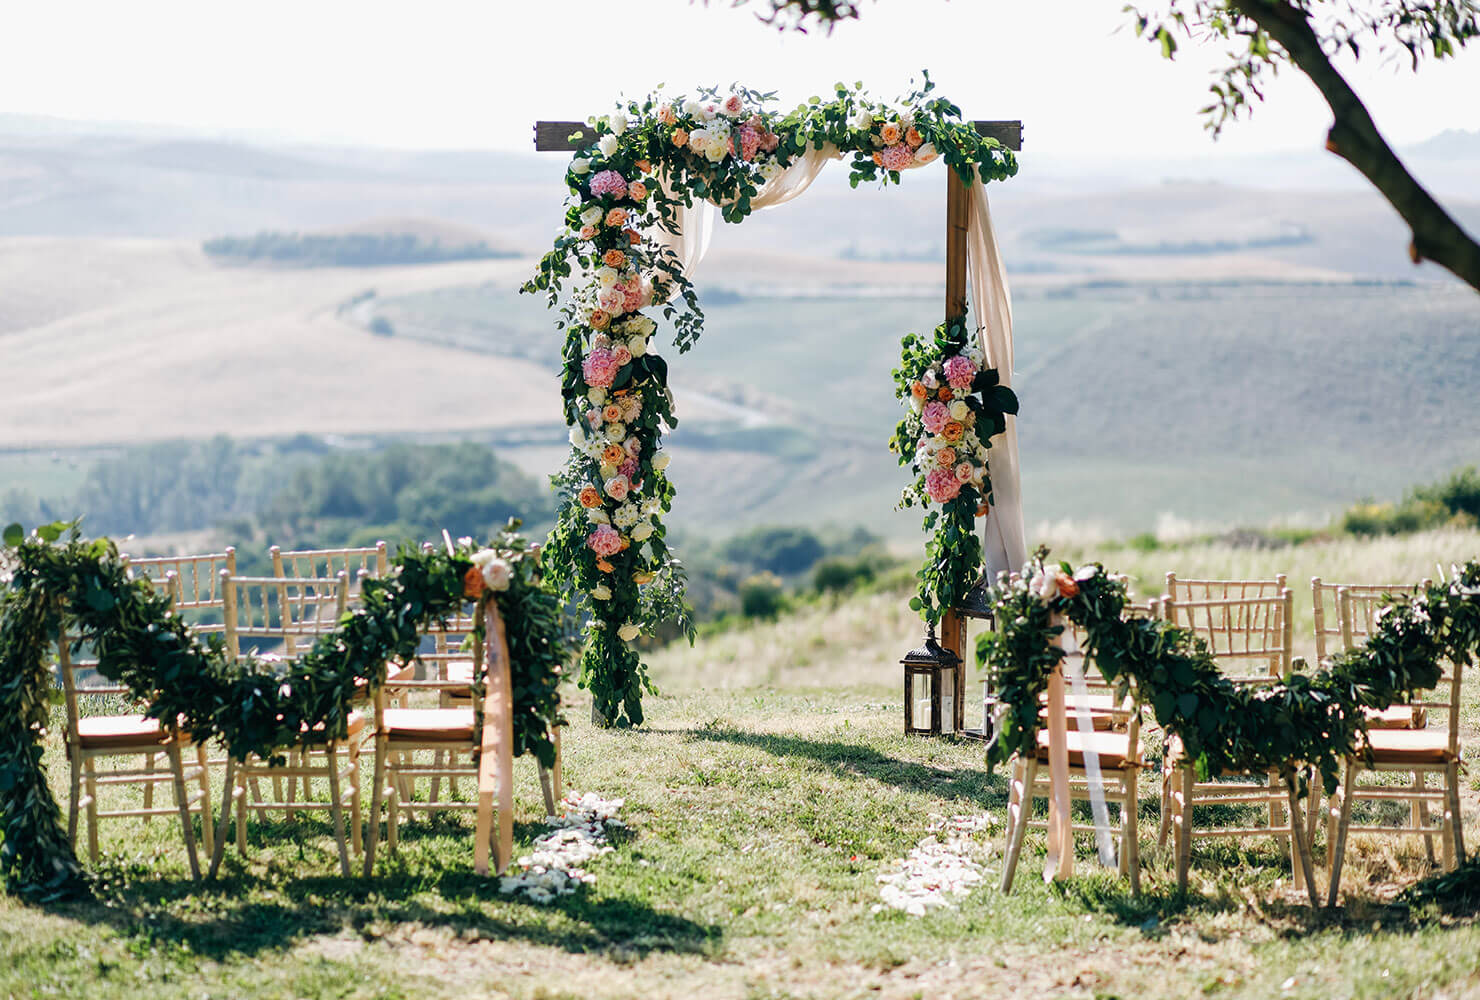 Wedding altar and chairs decorated with vines, florals and drapping fabric.